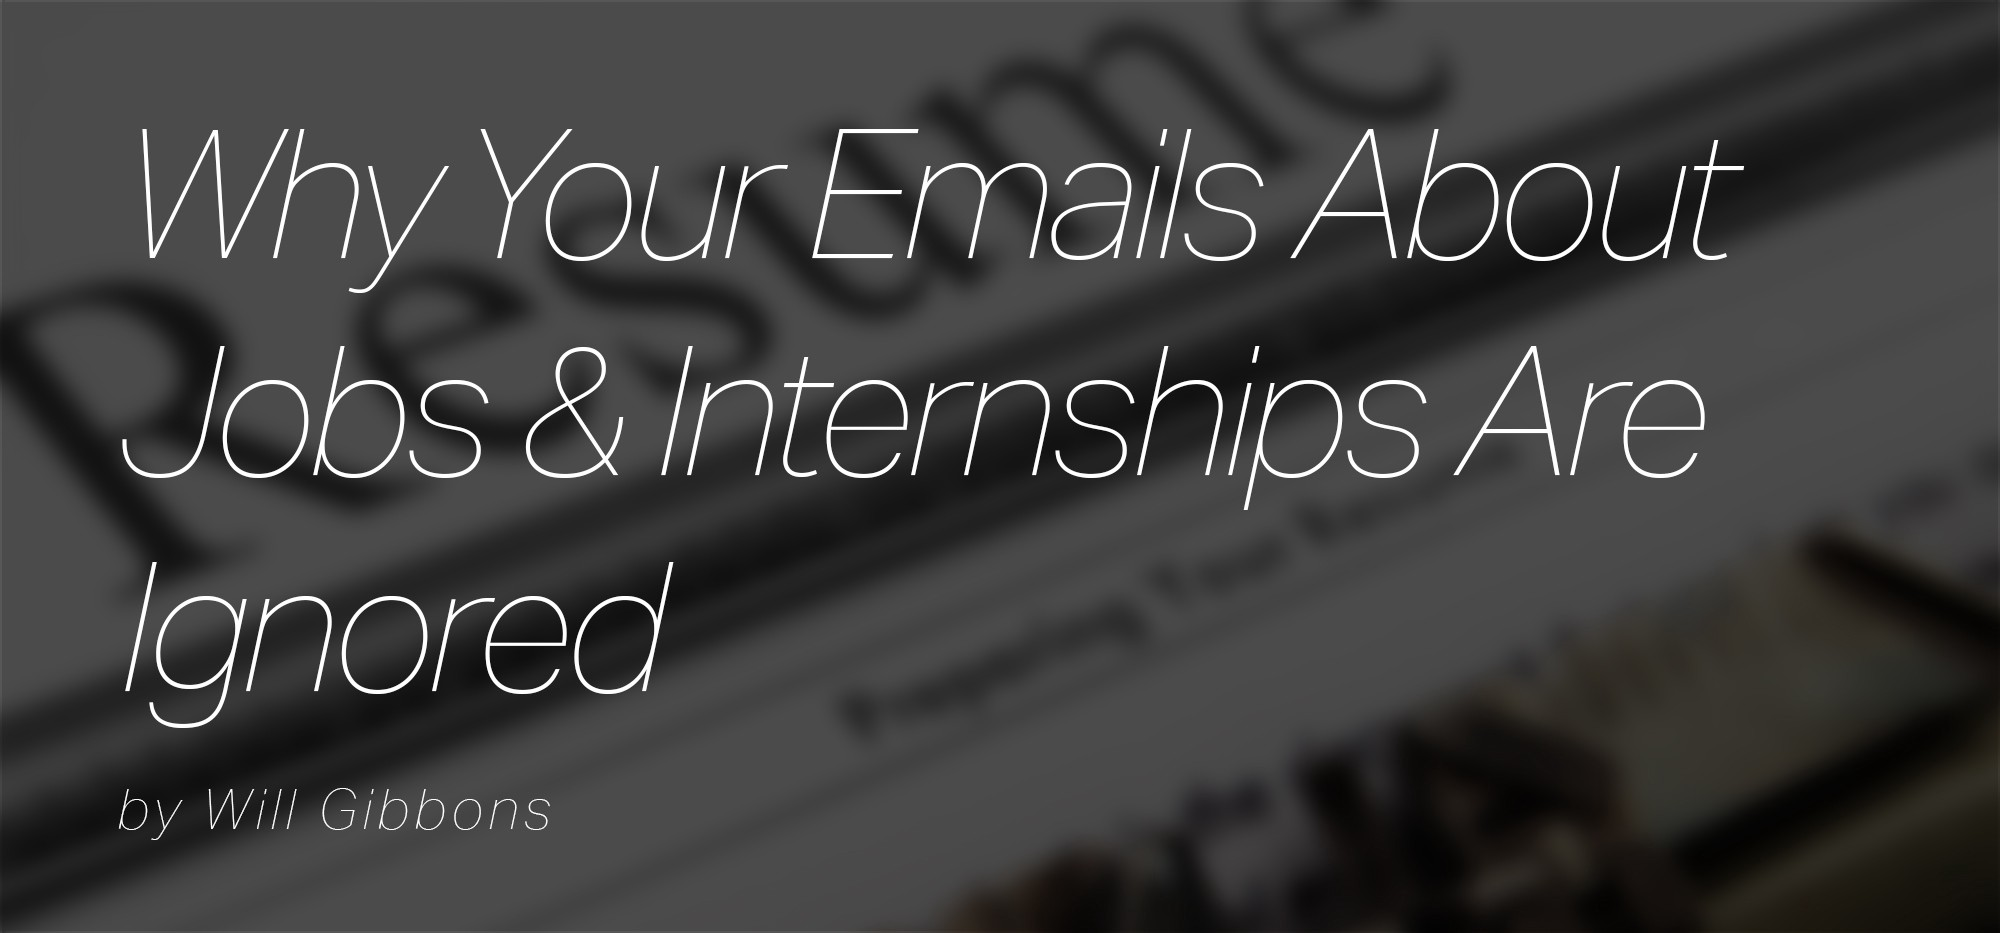 Why Your Emails About Jobs & Internships Are Ignored